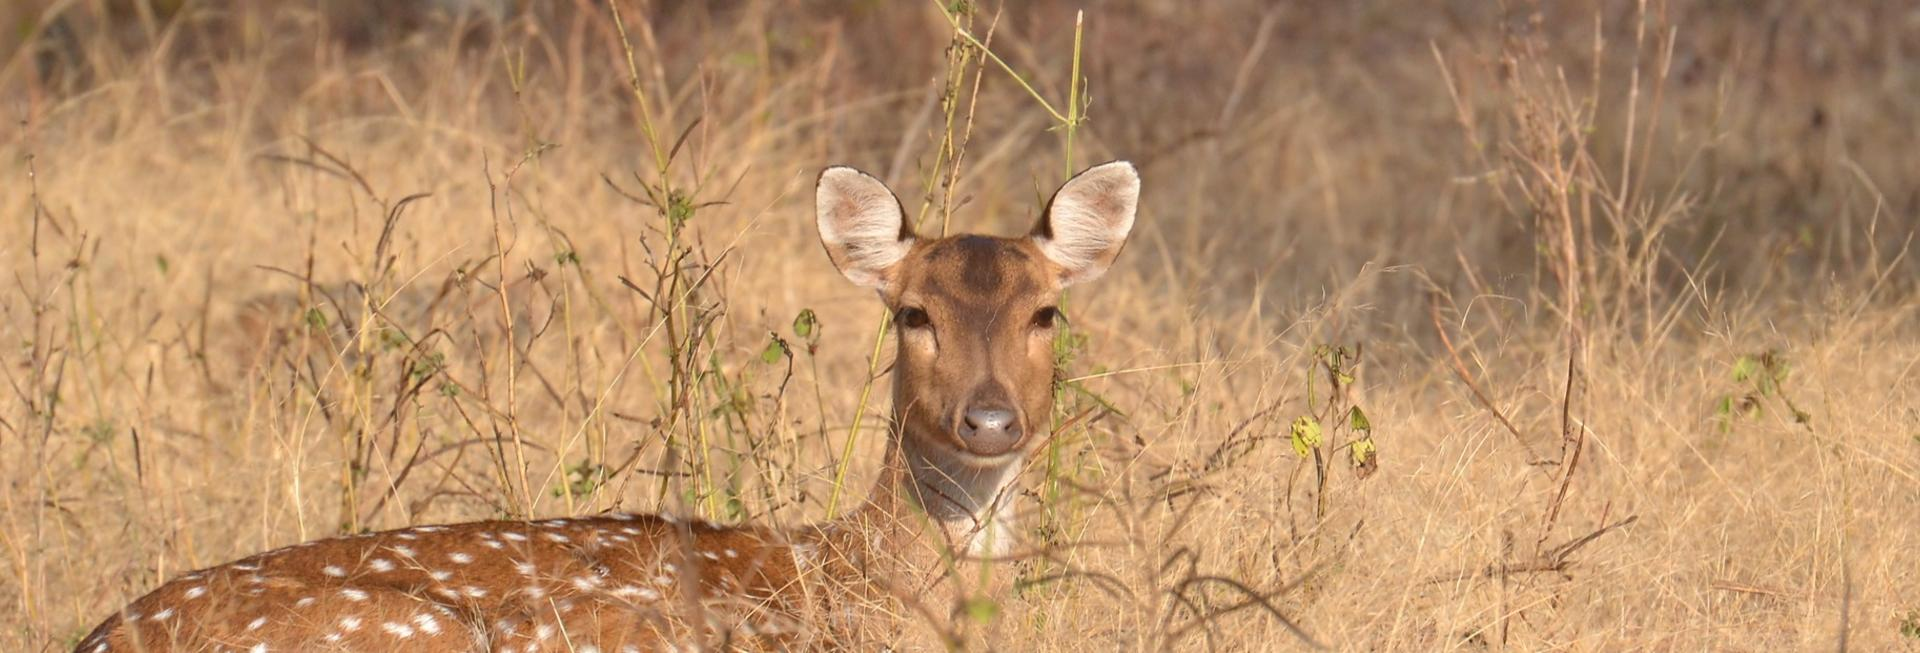 Deer, Satpura National Park